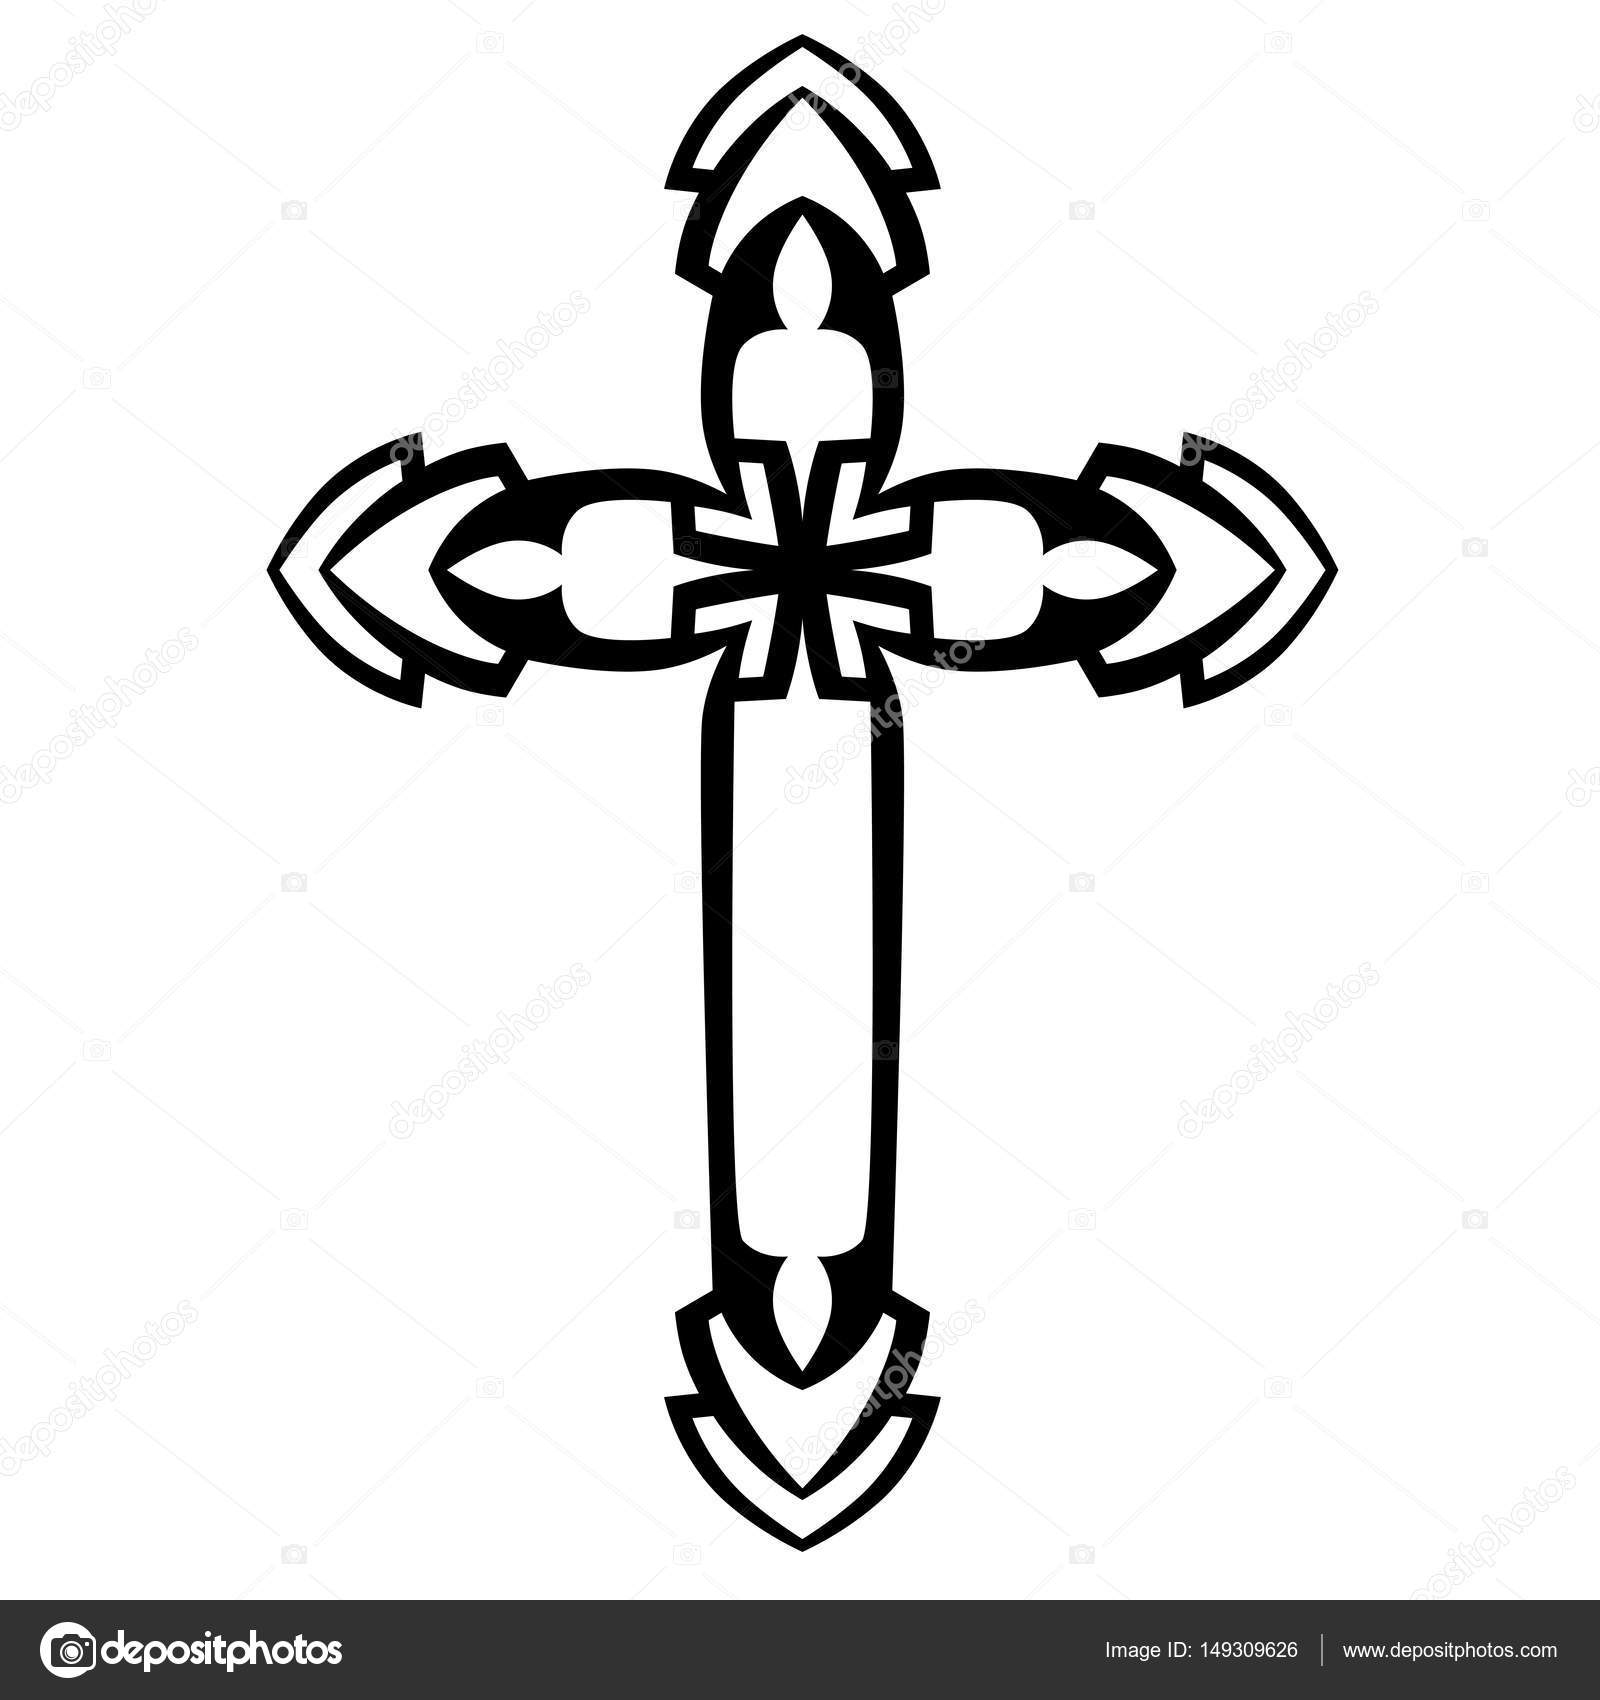 tattoo tribal cross designs isolated vector sketch of a tattoo art 963x1024 jpeg. Black Bedroom Furniture Sets. Home Design Ideas